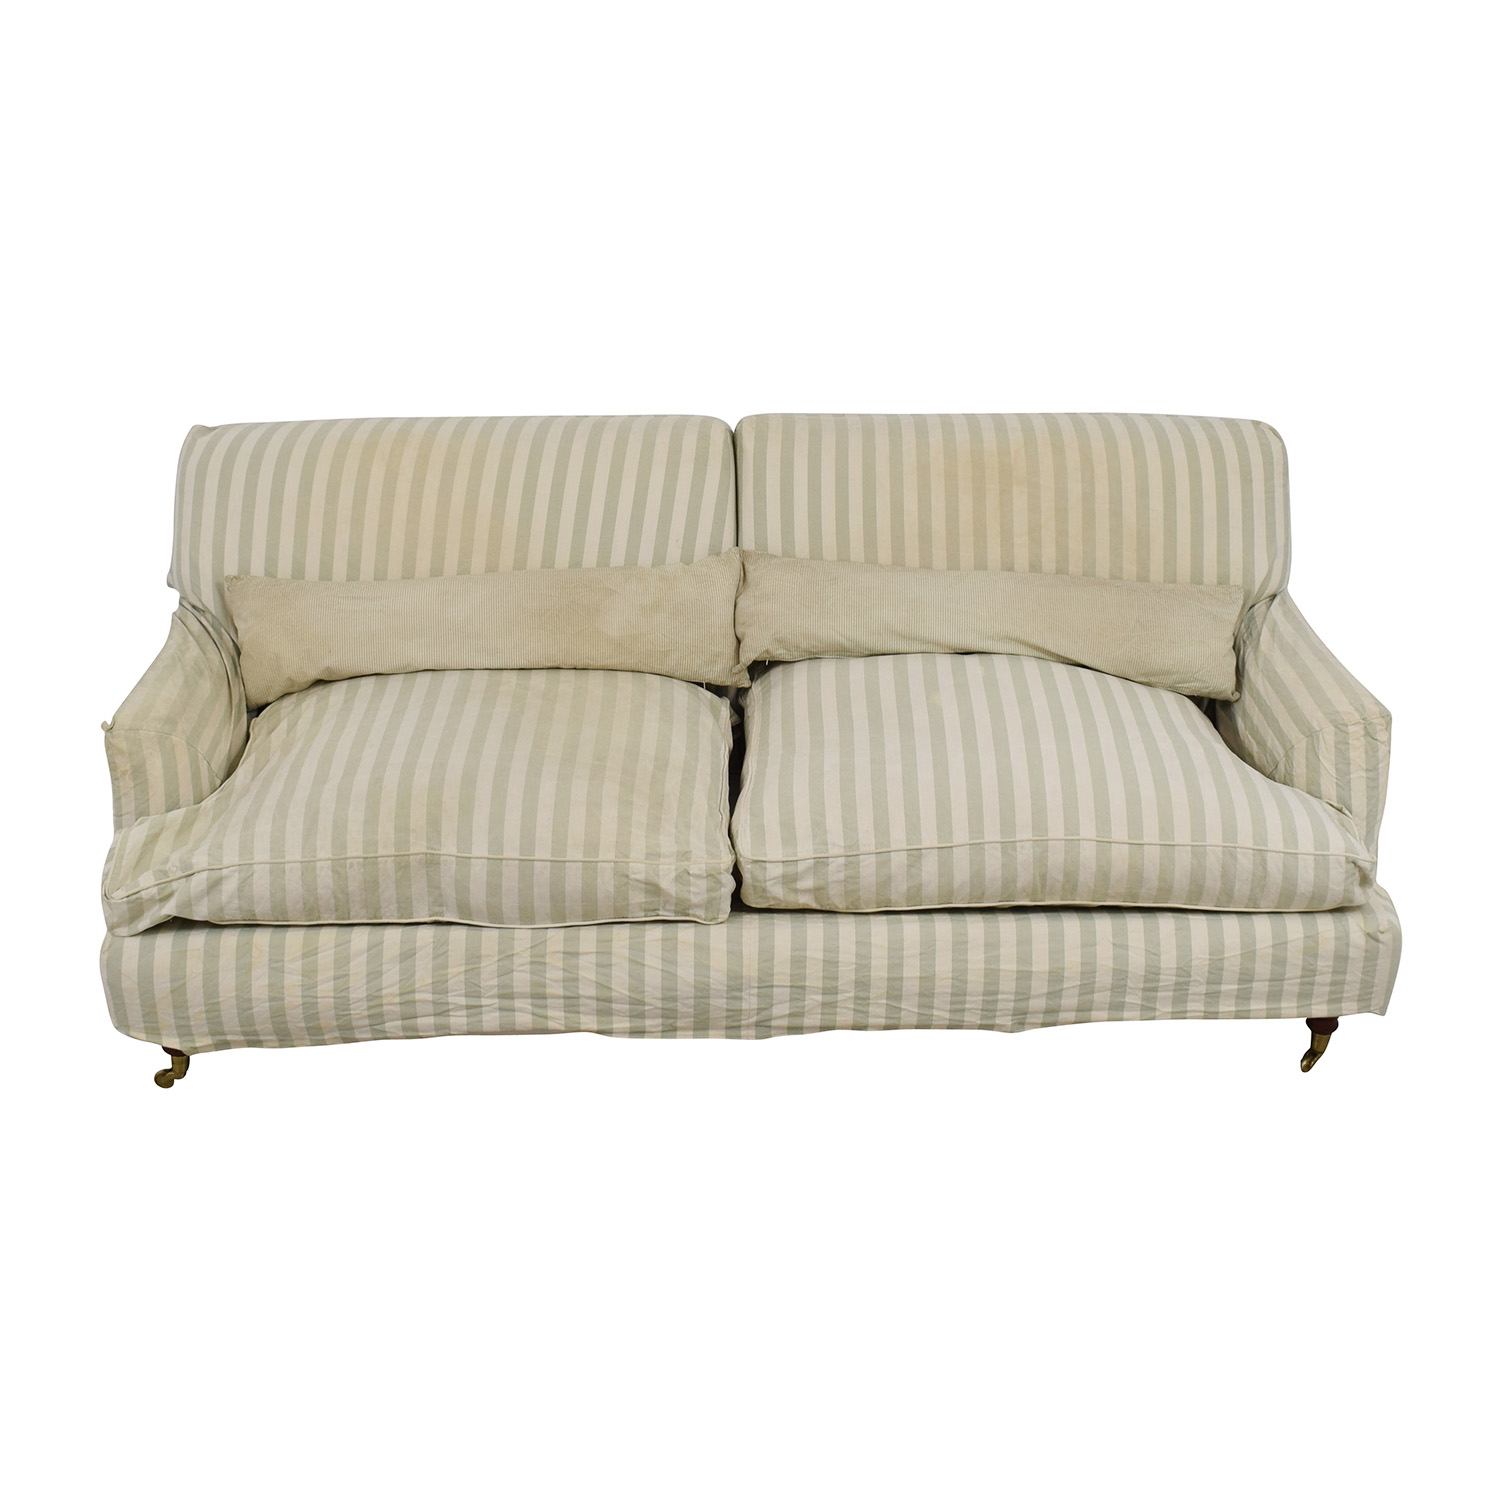 Green and White Striped English Roll-arm Sofa / Classic Sofas